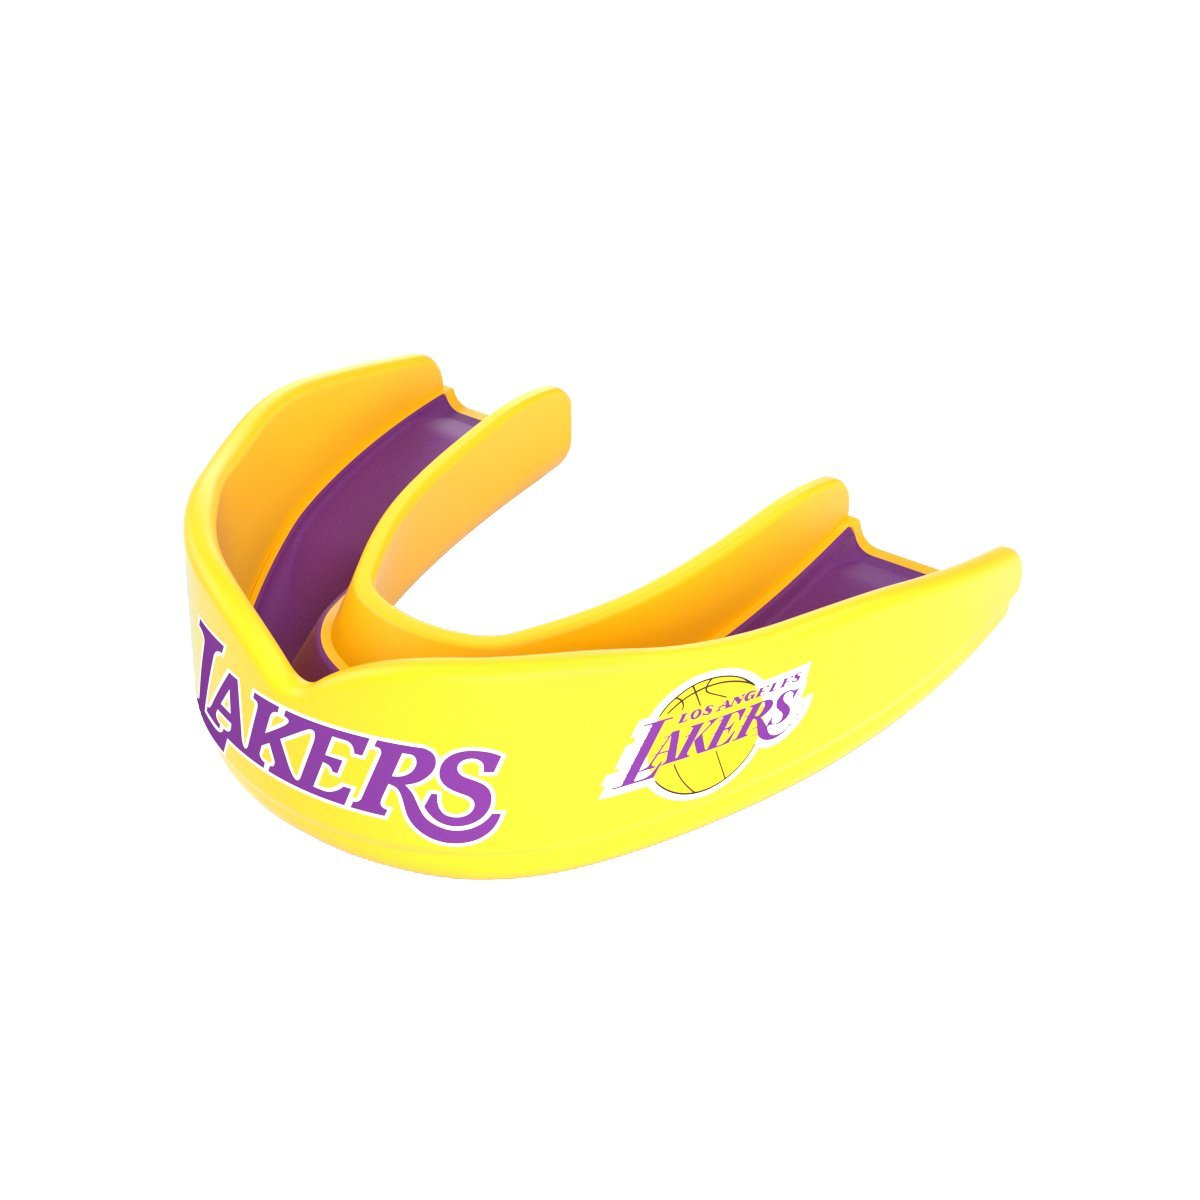 Shock Doctor 8300 NBA Los Angeles Lakers Basketball Mouth Guard, Gold/Purple, Adult